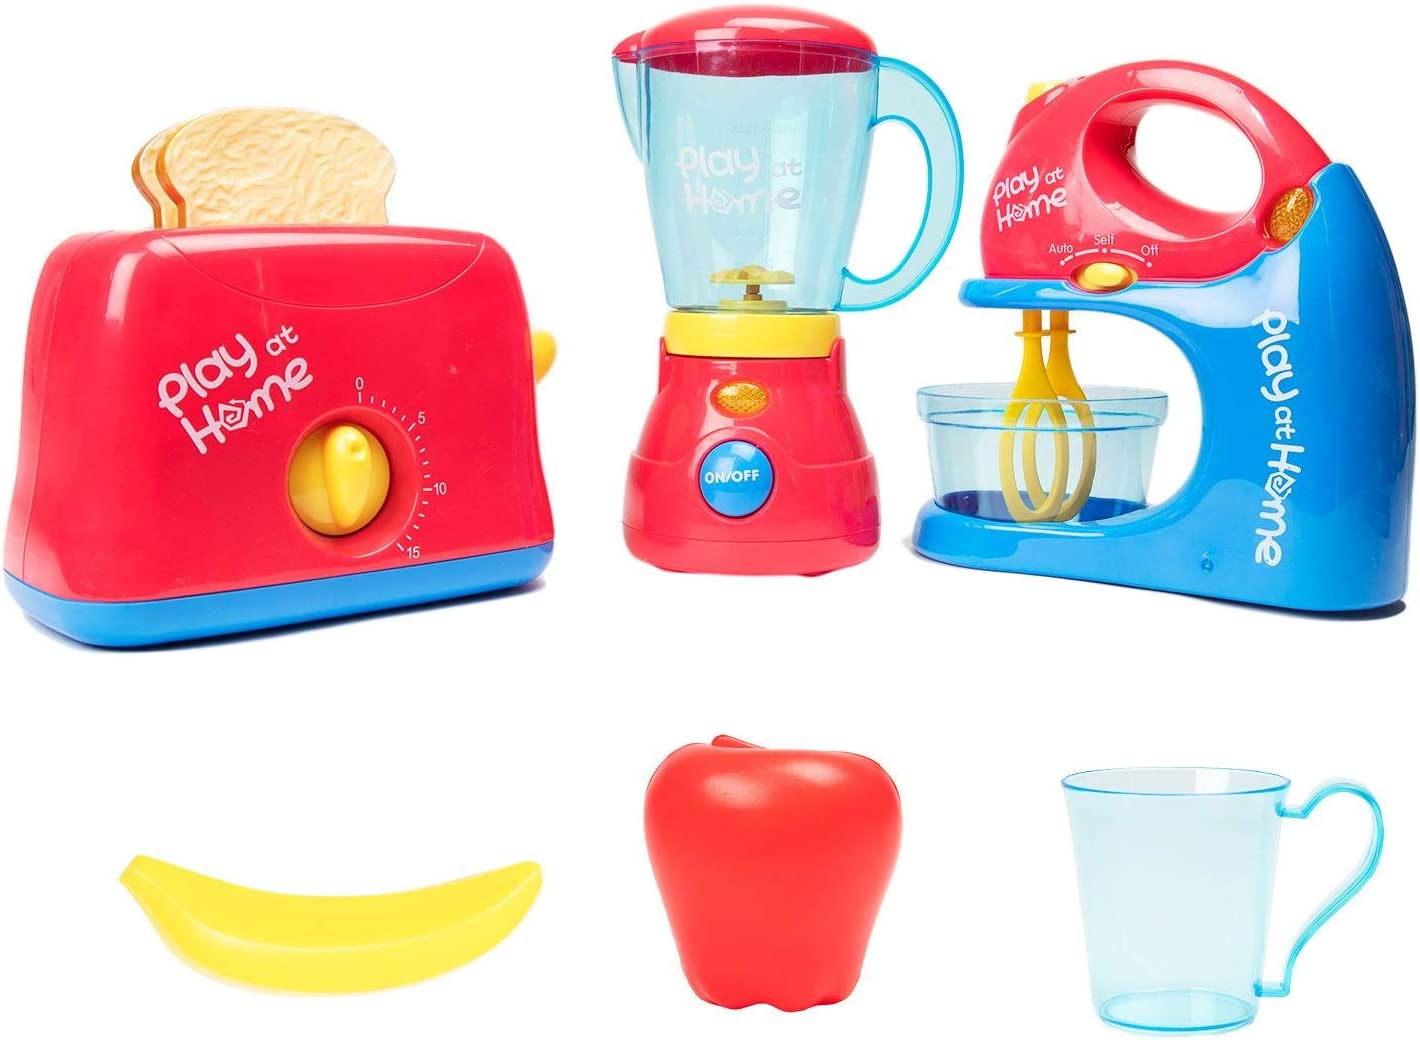 Toy Chef Play Kitchen Appliances – Premium Set of Toaster Toys for Kids with Kitchen Mixer and Pretend Blender – Red and Blue Toddler Kitchen Accessories – Cool Present for Girls and Boys